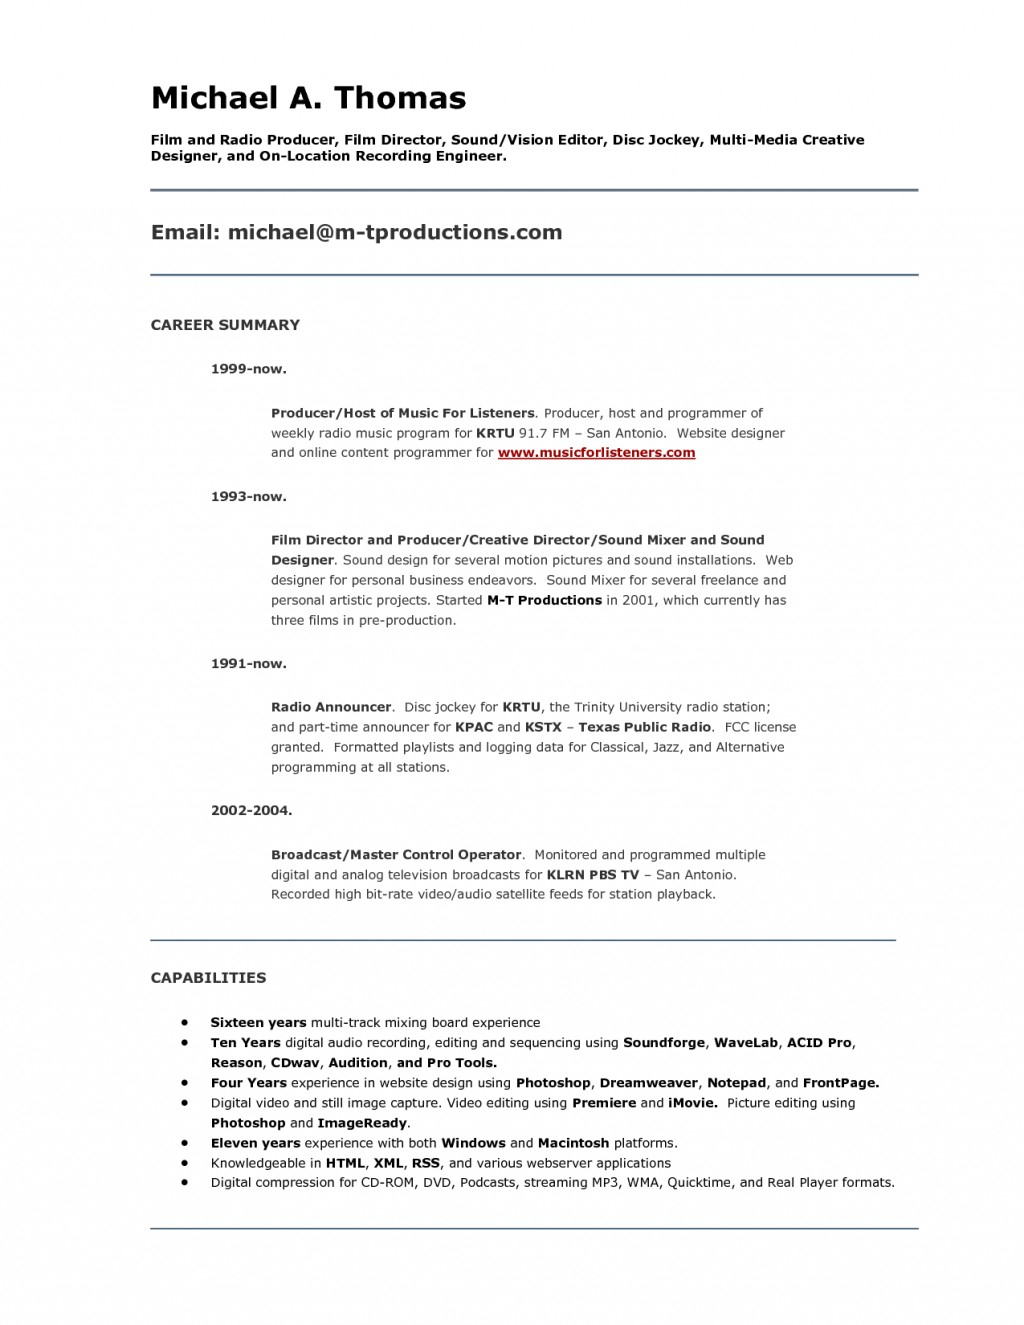 Engineering Cover Letter Template Collection | Letter Template ...